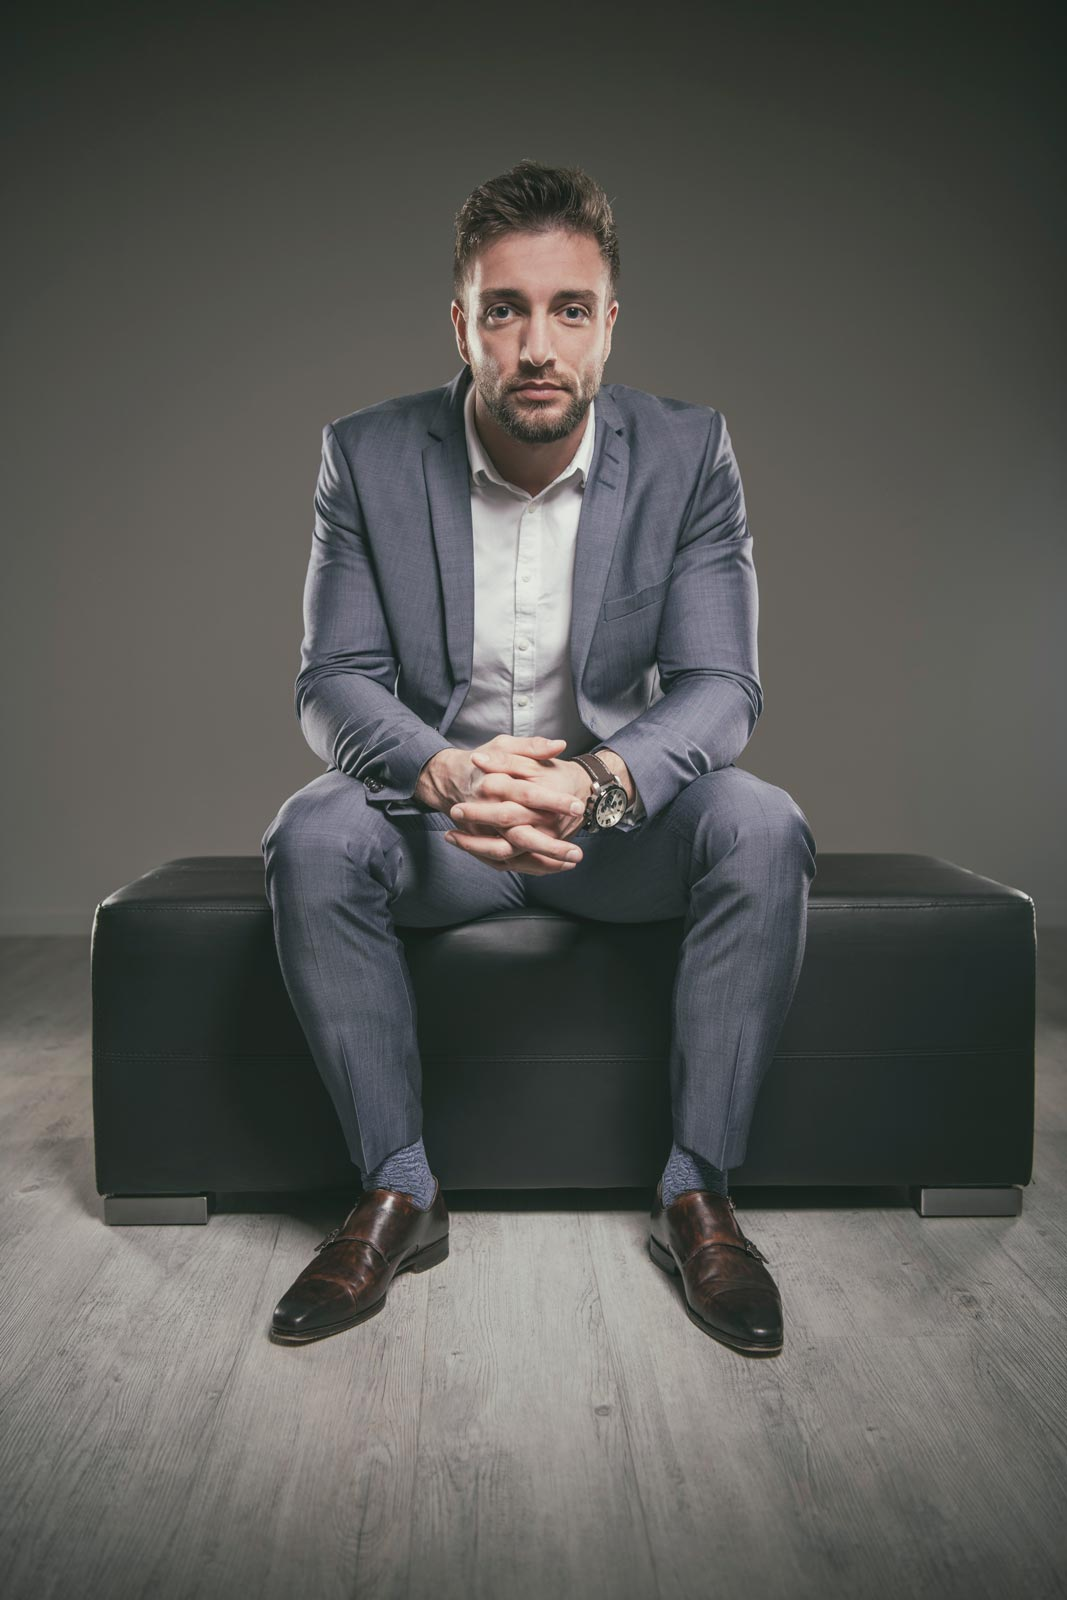 coole maennerportraits business style